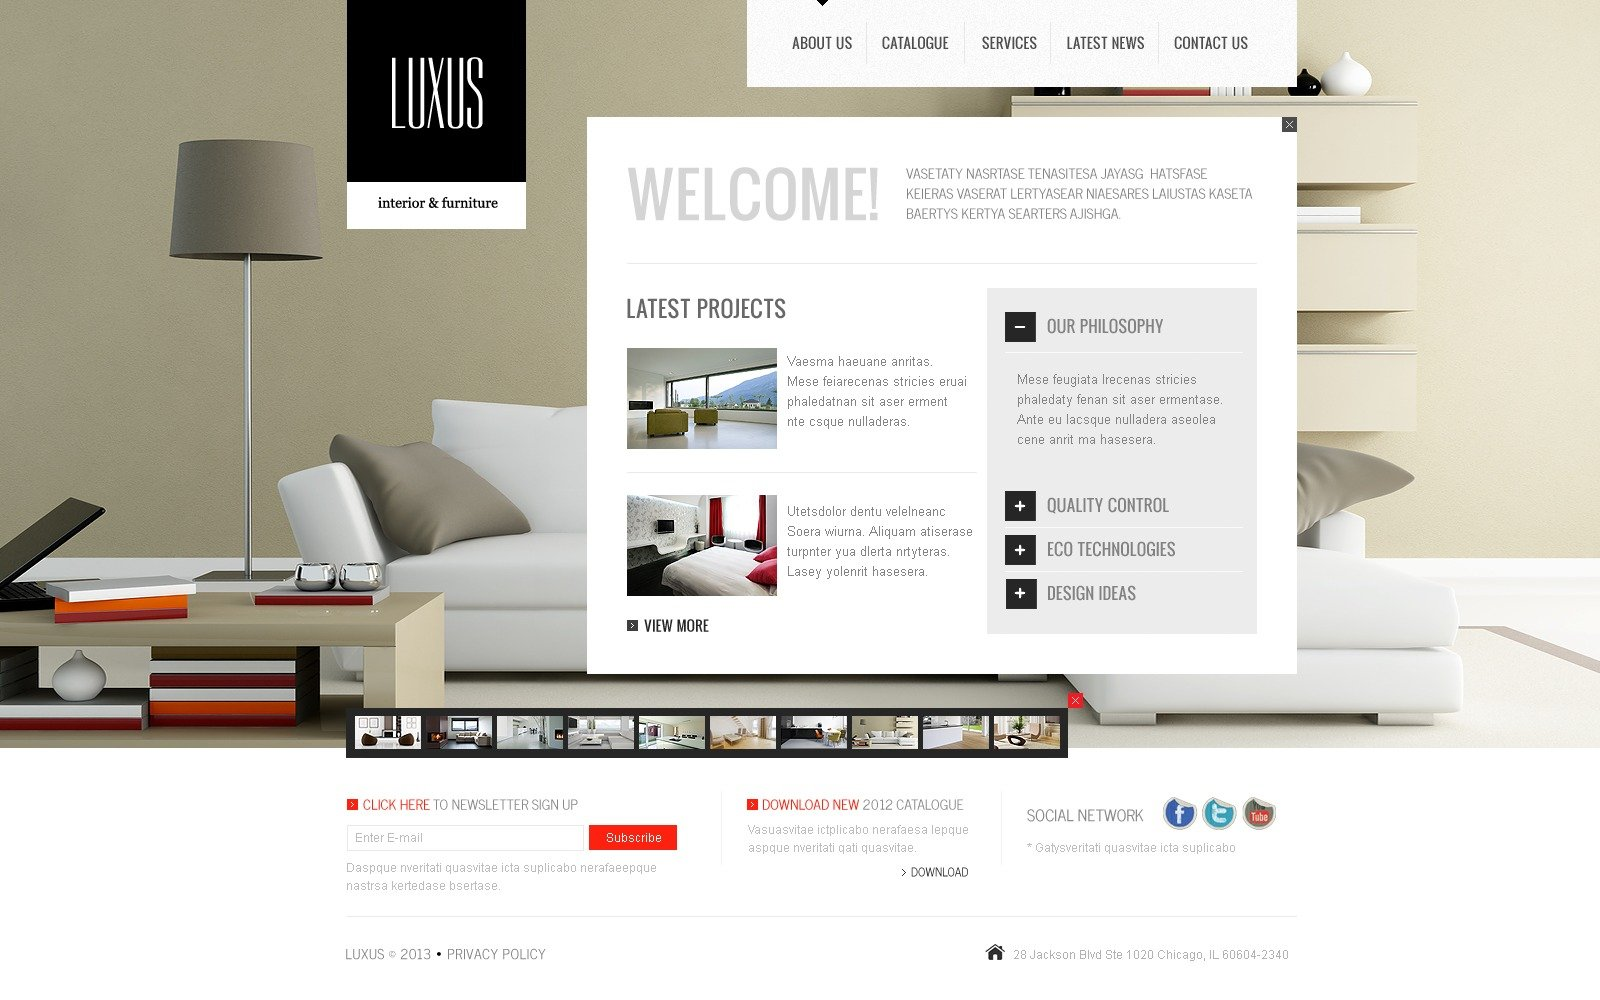 interior design website template 41922. Black Bedroom Furniture Sets. Home Design Ideas